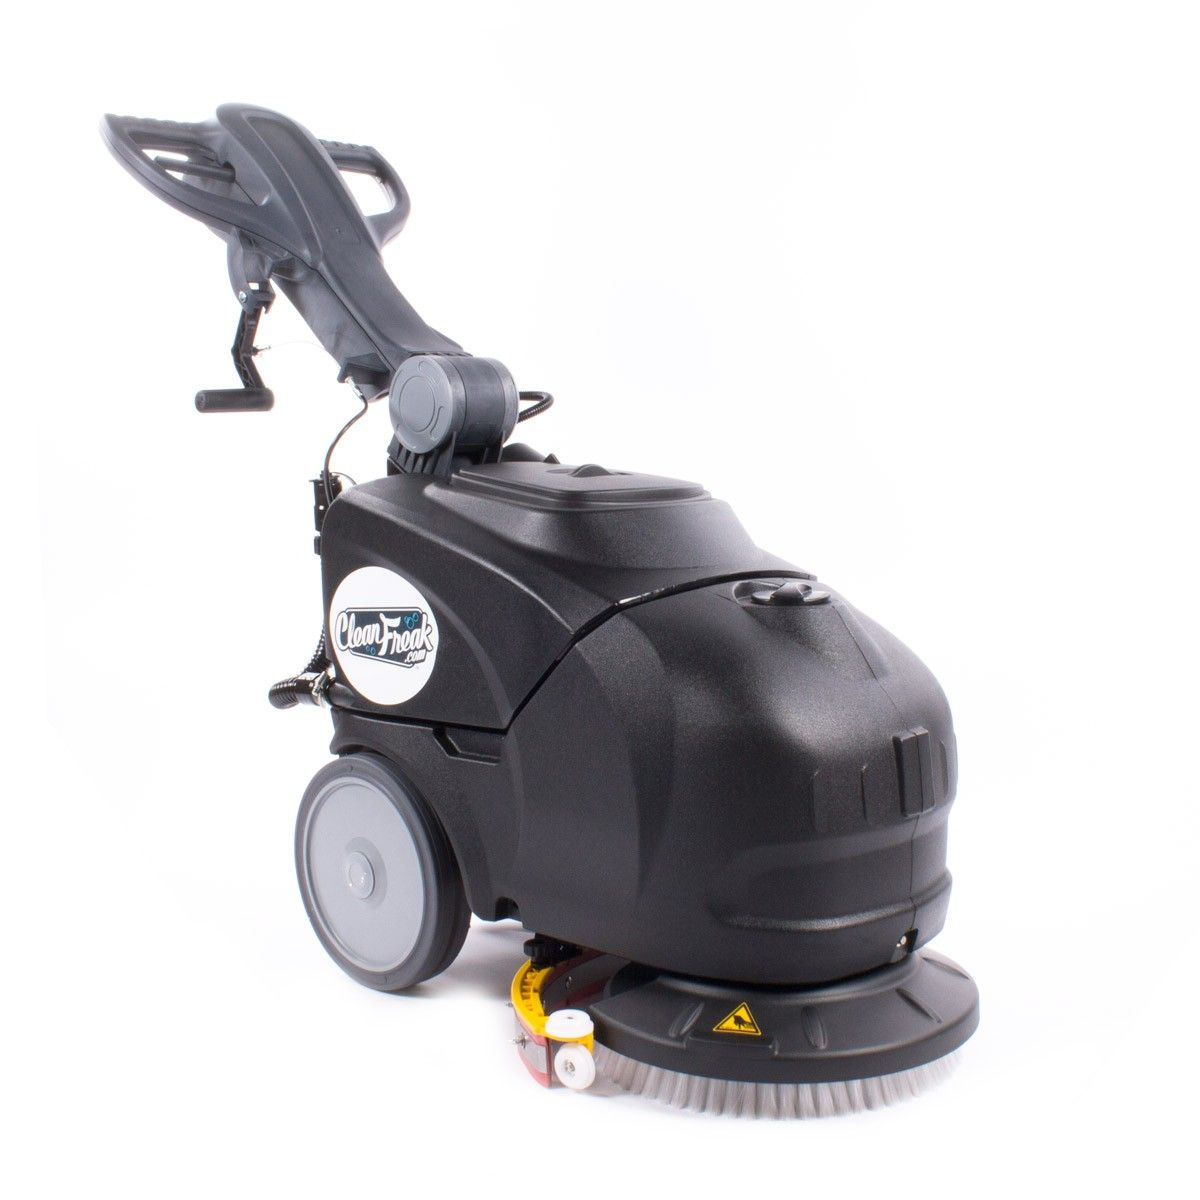 Low priced compact electric or battery auto scrubber!